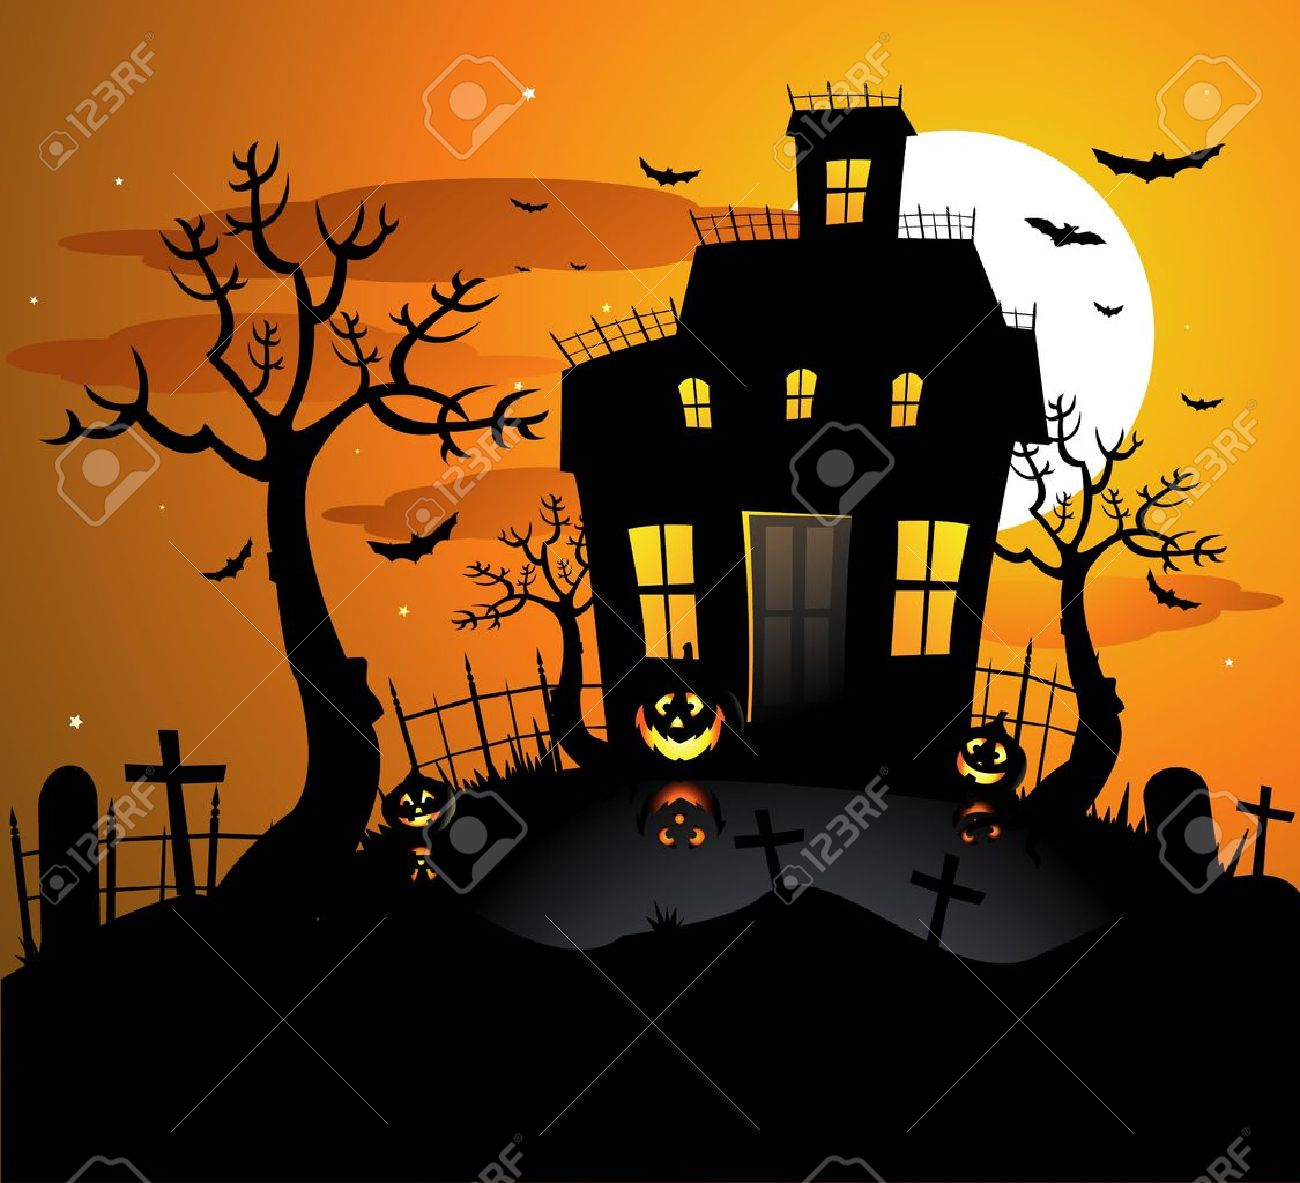 Halloween Spooky House.Halloween Haunted House Background